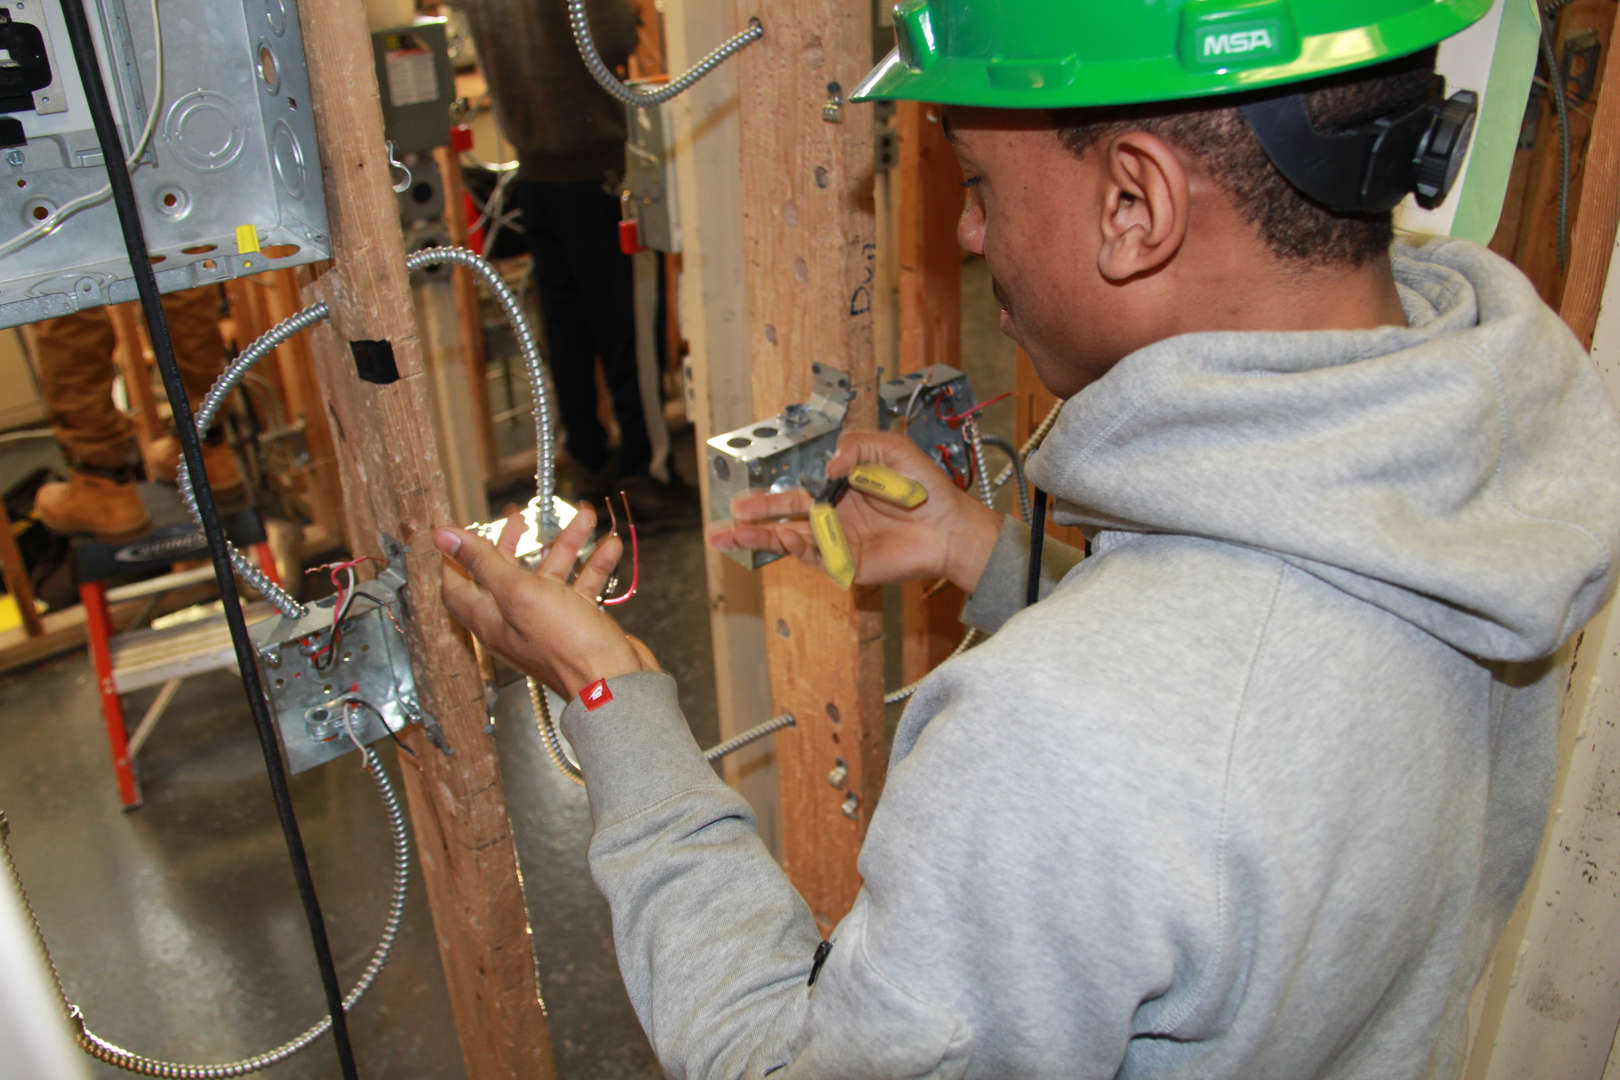 Student installing an electrical switch